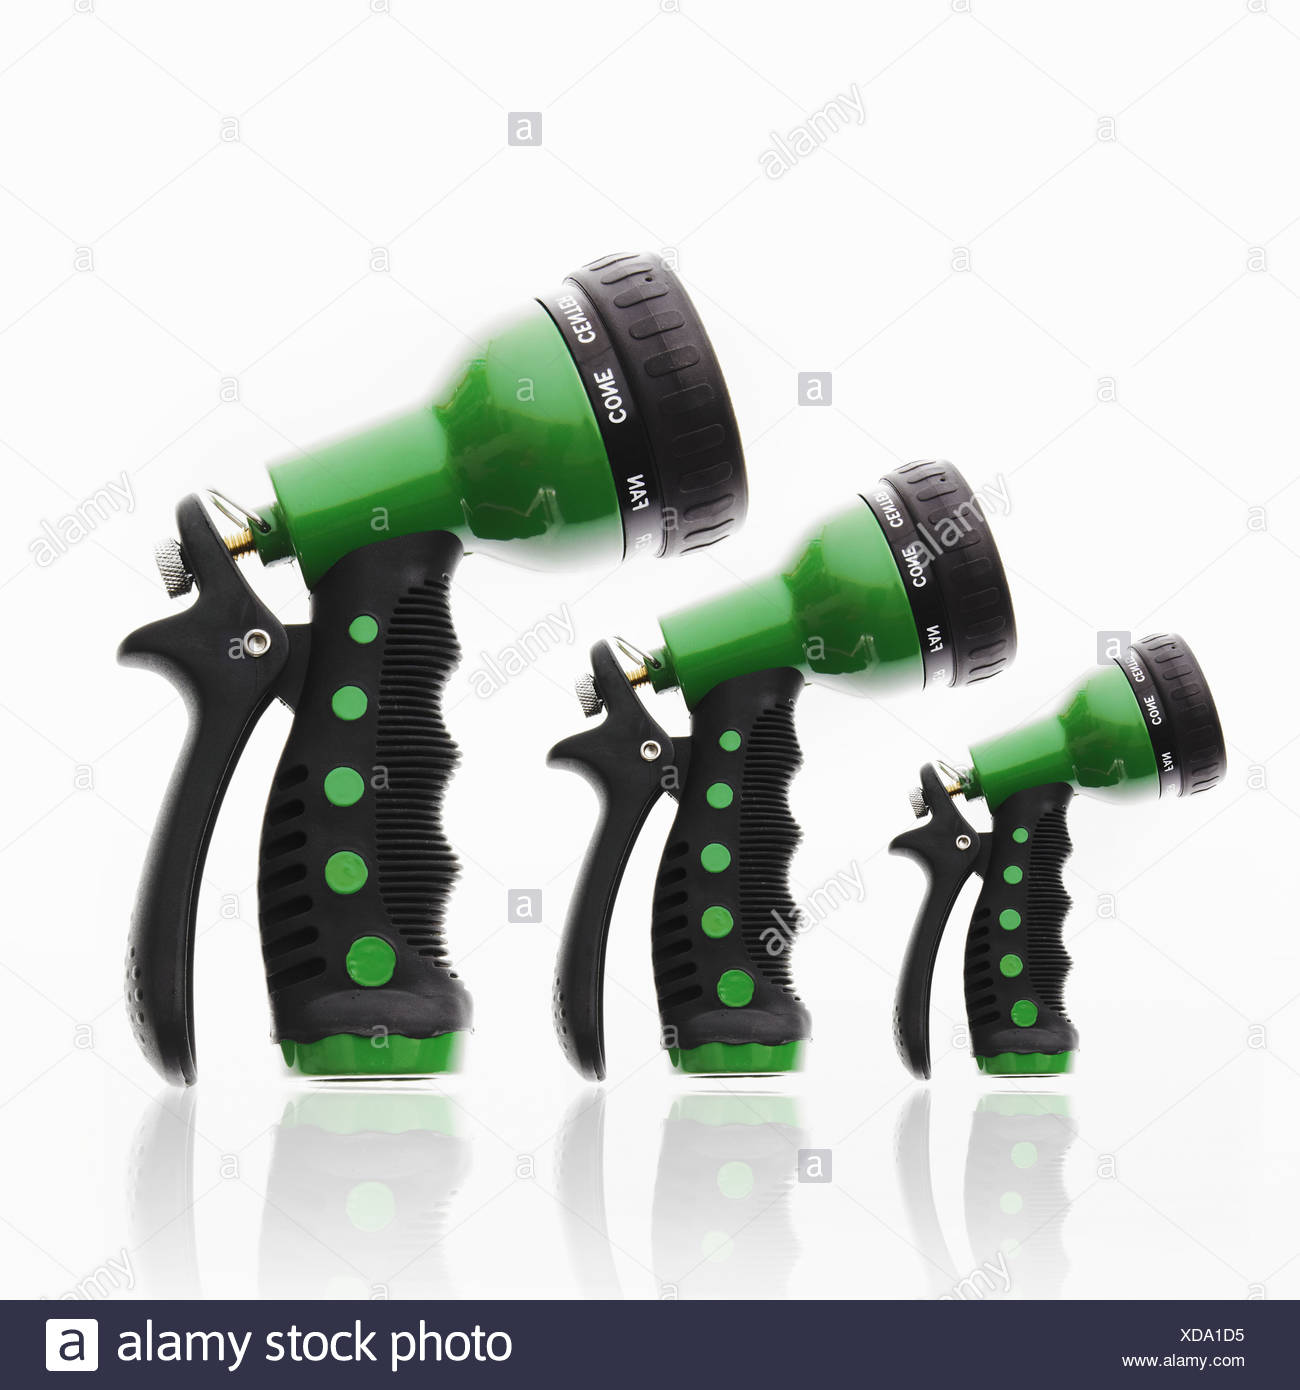 3 garden hose triggers nozzles in ascending size Stock Photo